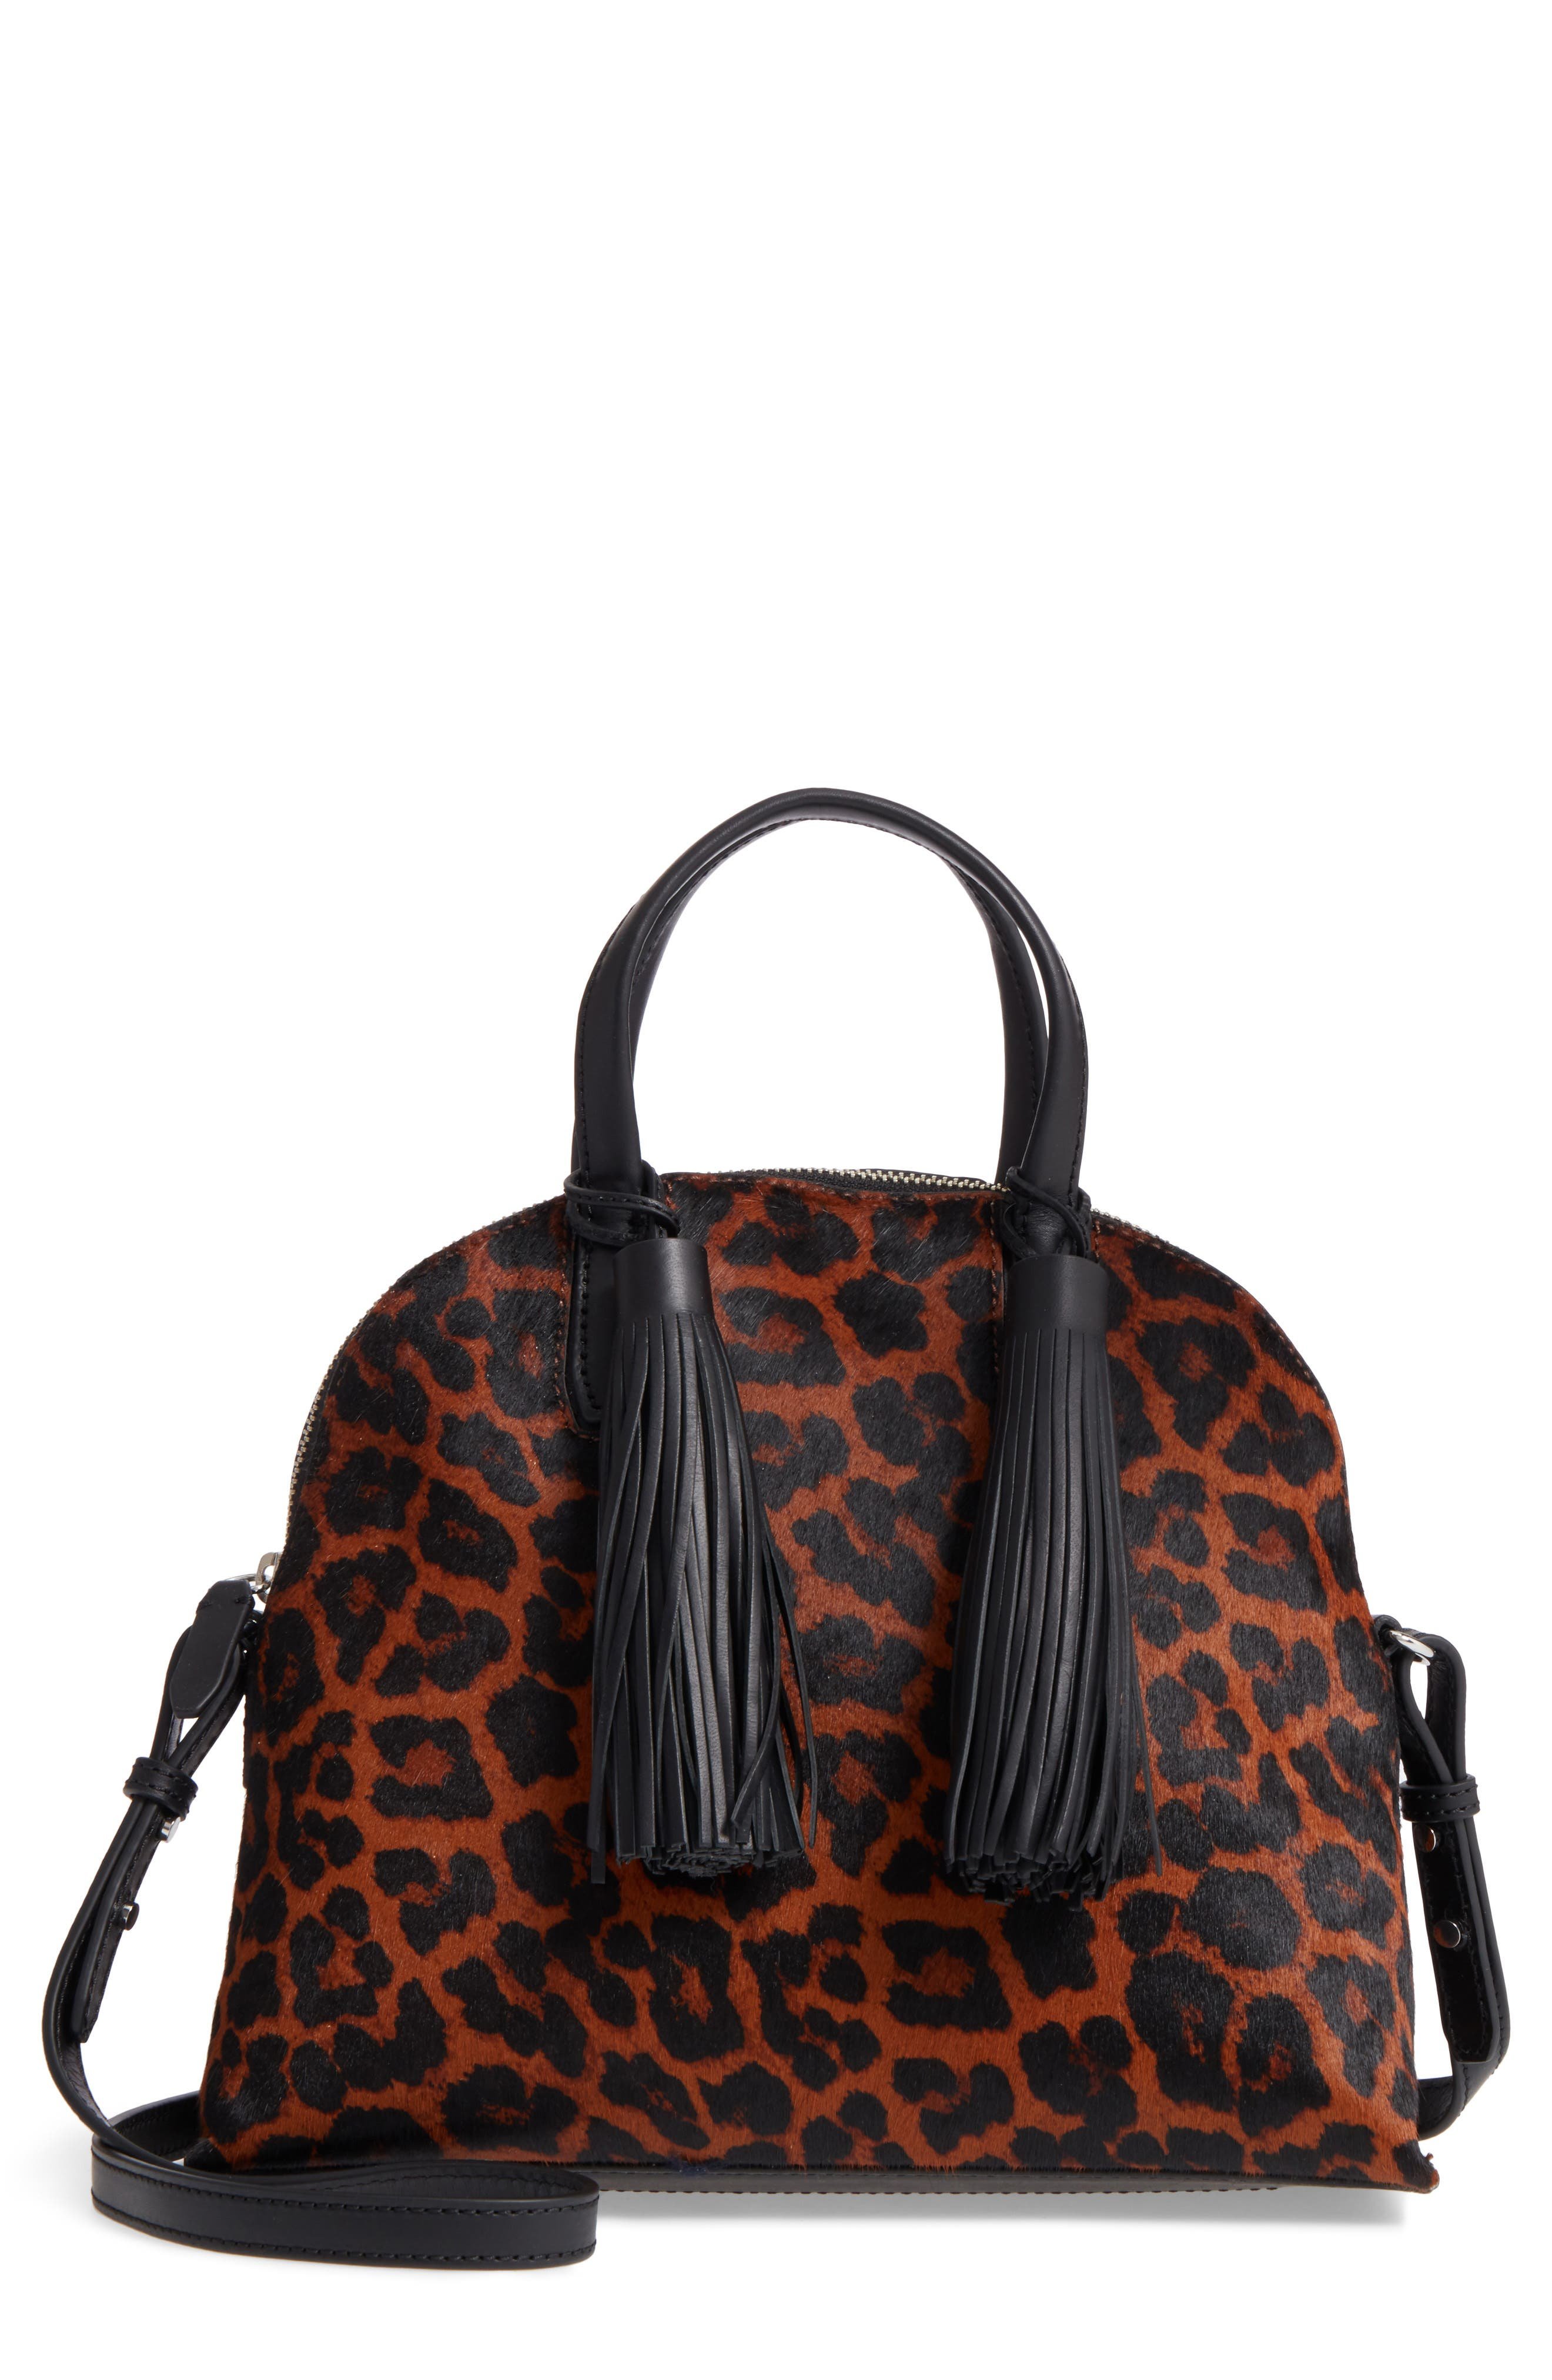 Loeffler Randall Genuine Calf Hair Dome Satchel